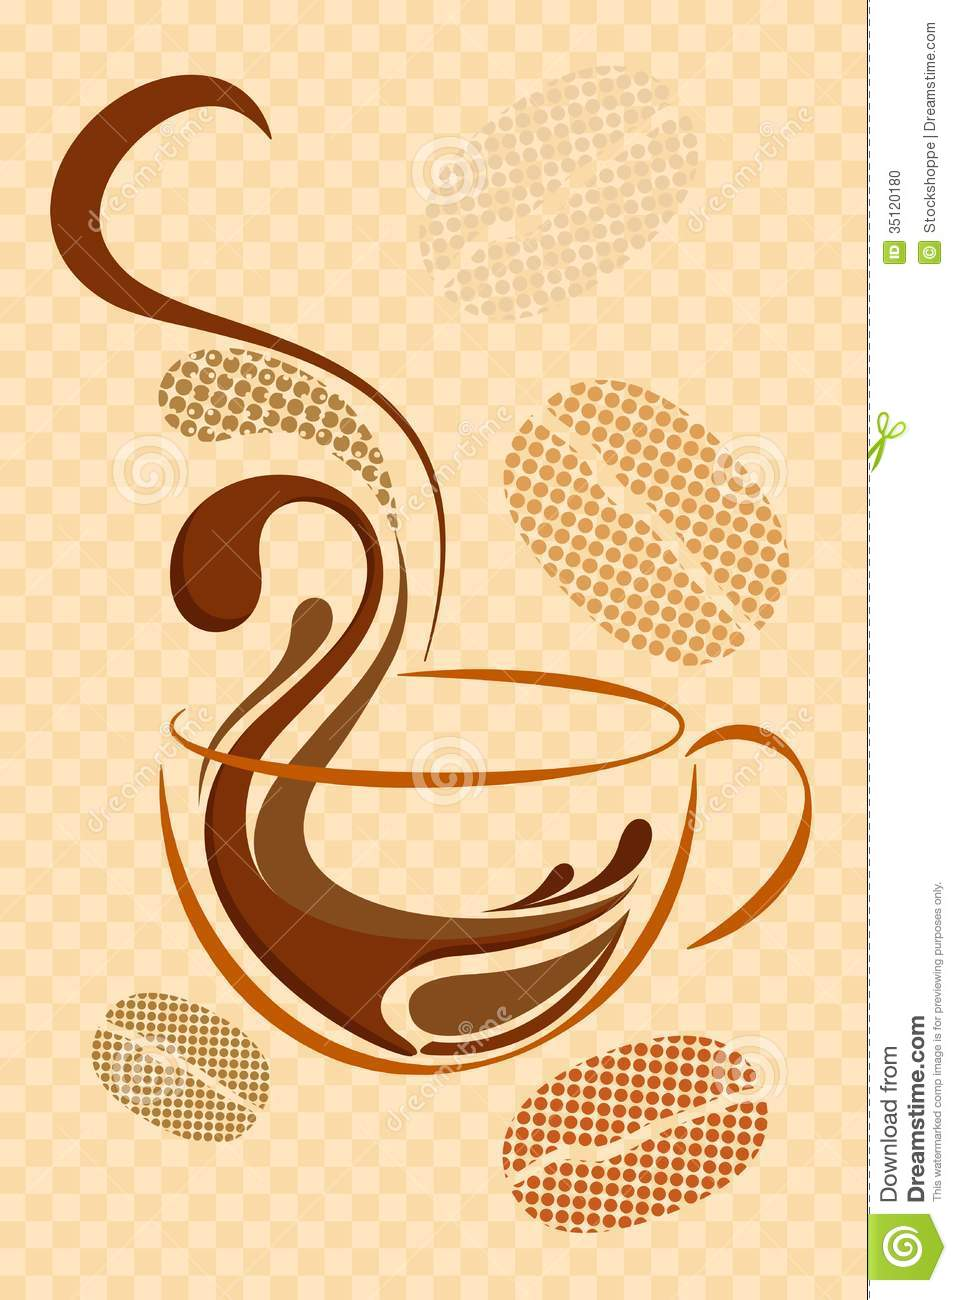 coffee background stock illustration image of meal